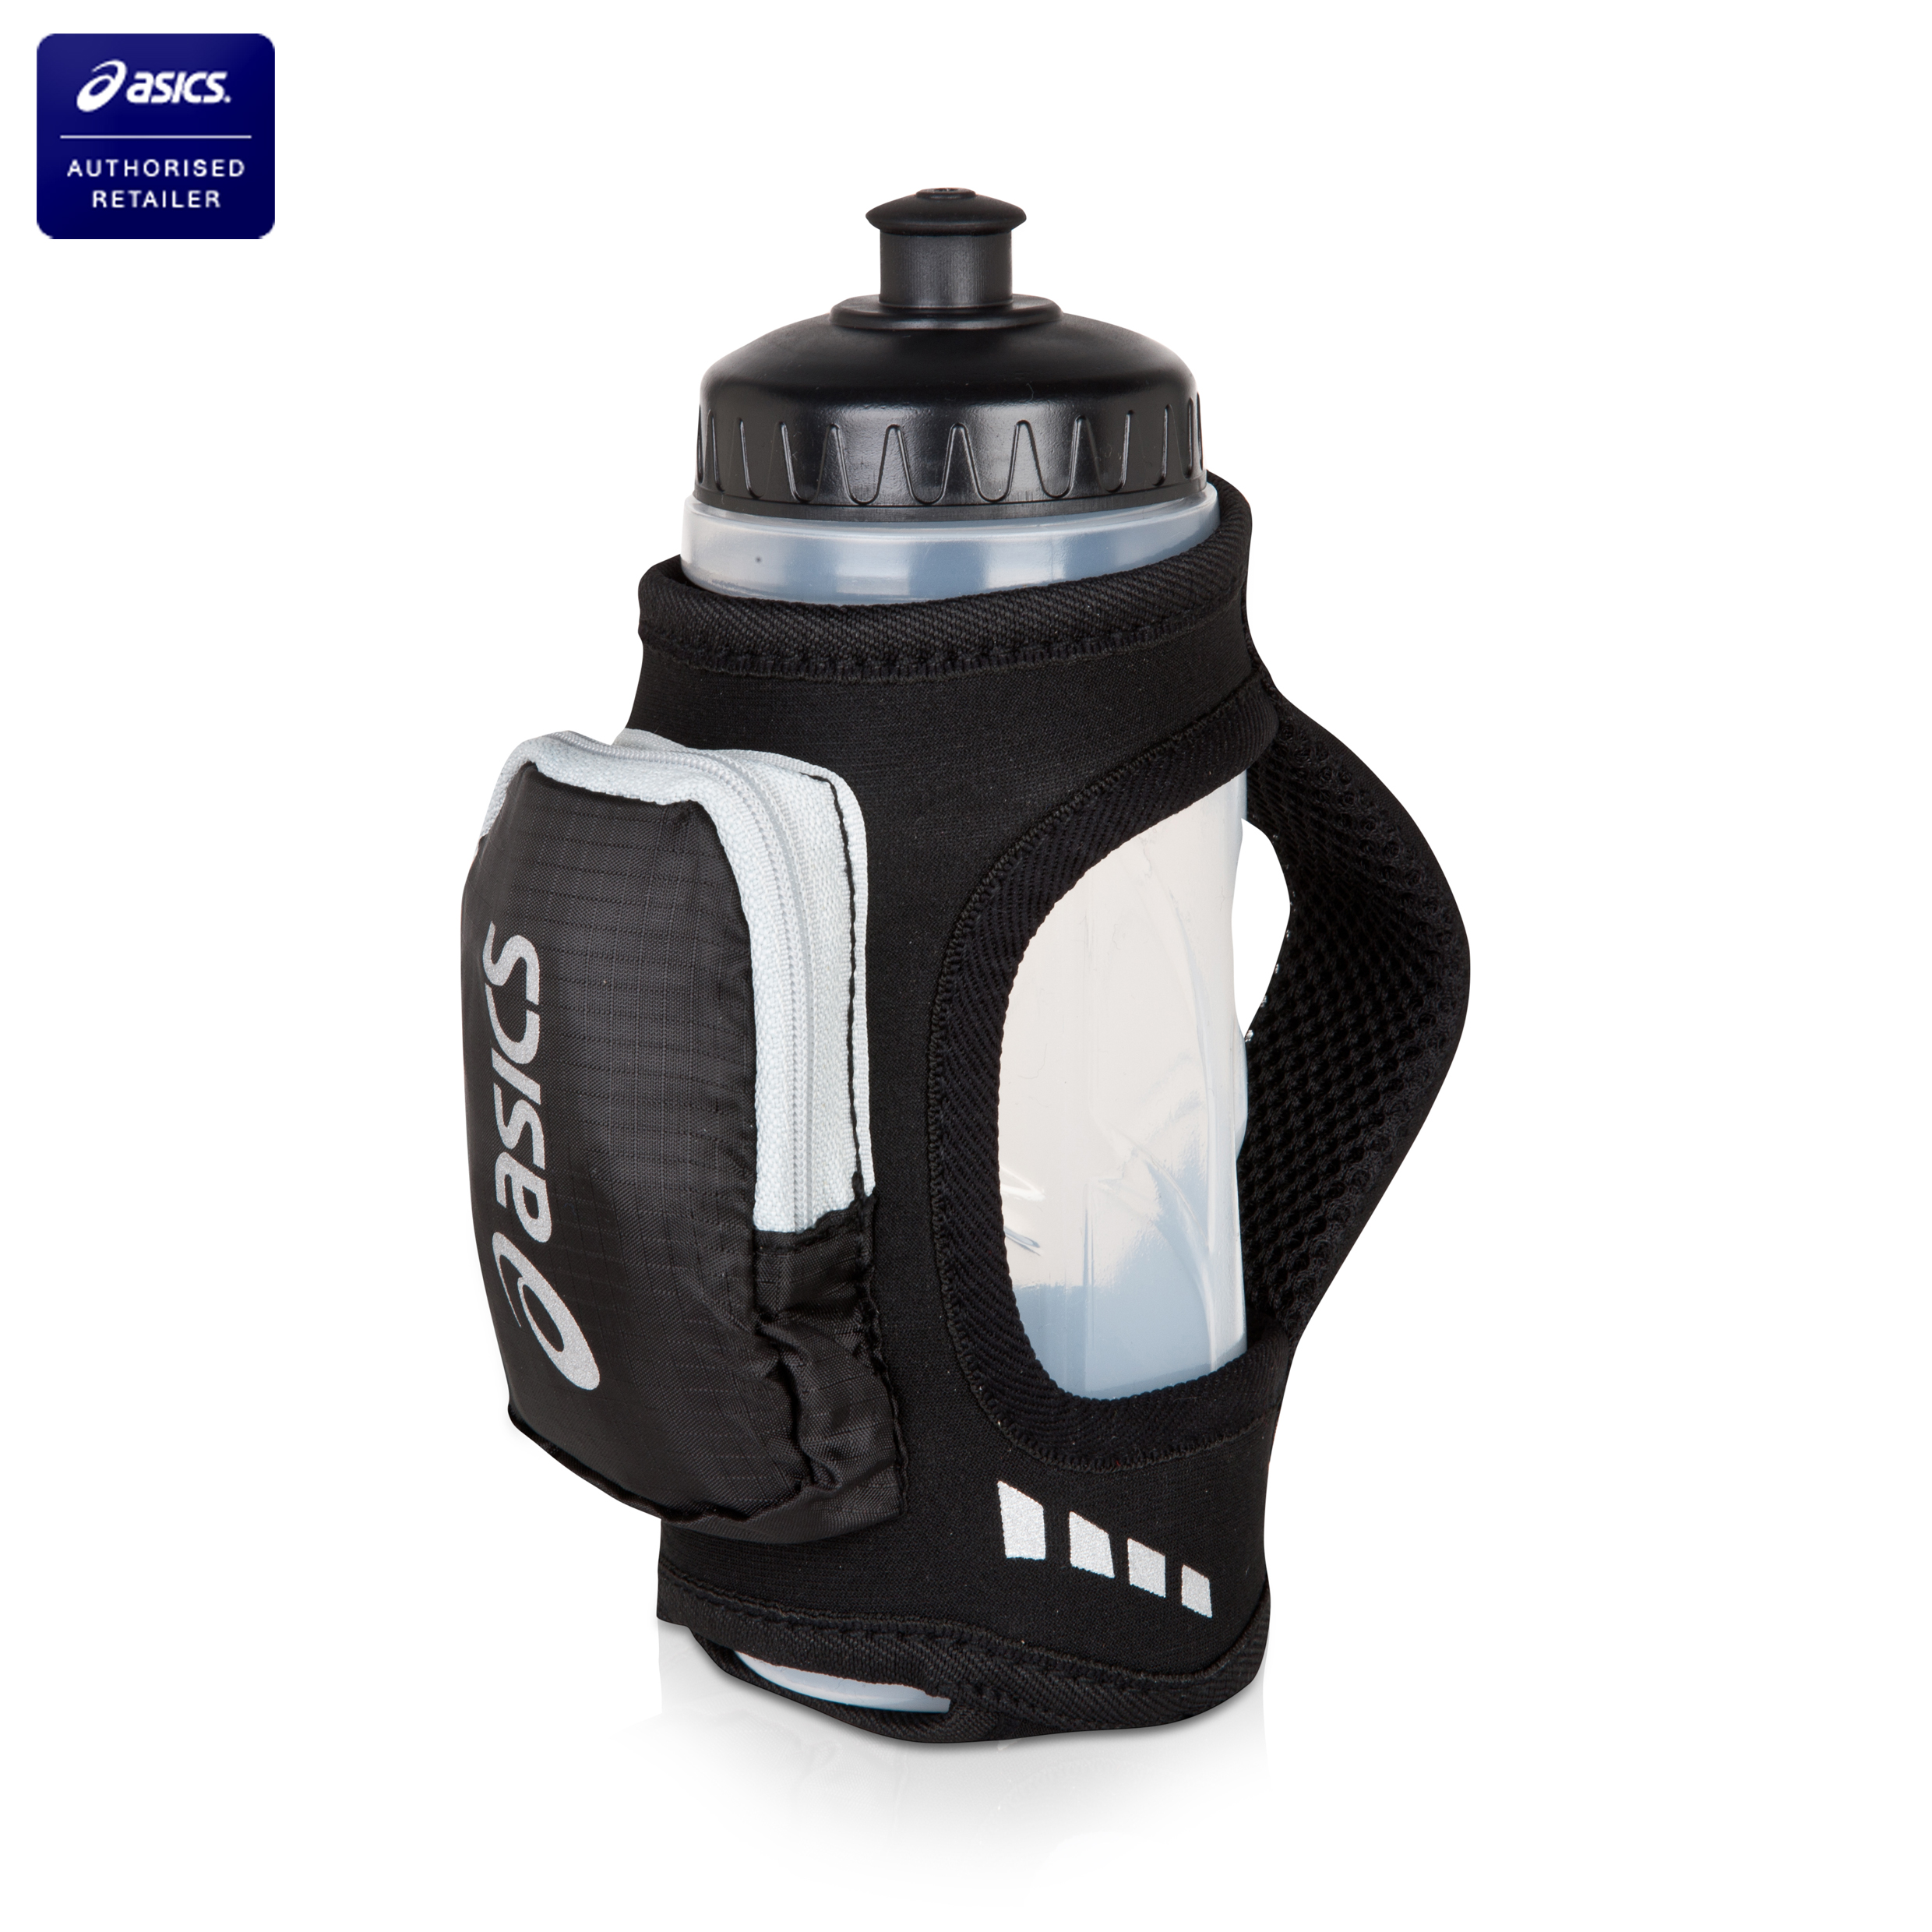 Asics Waterbottle Handgrip - Black